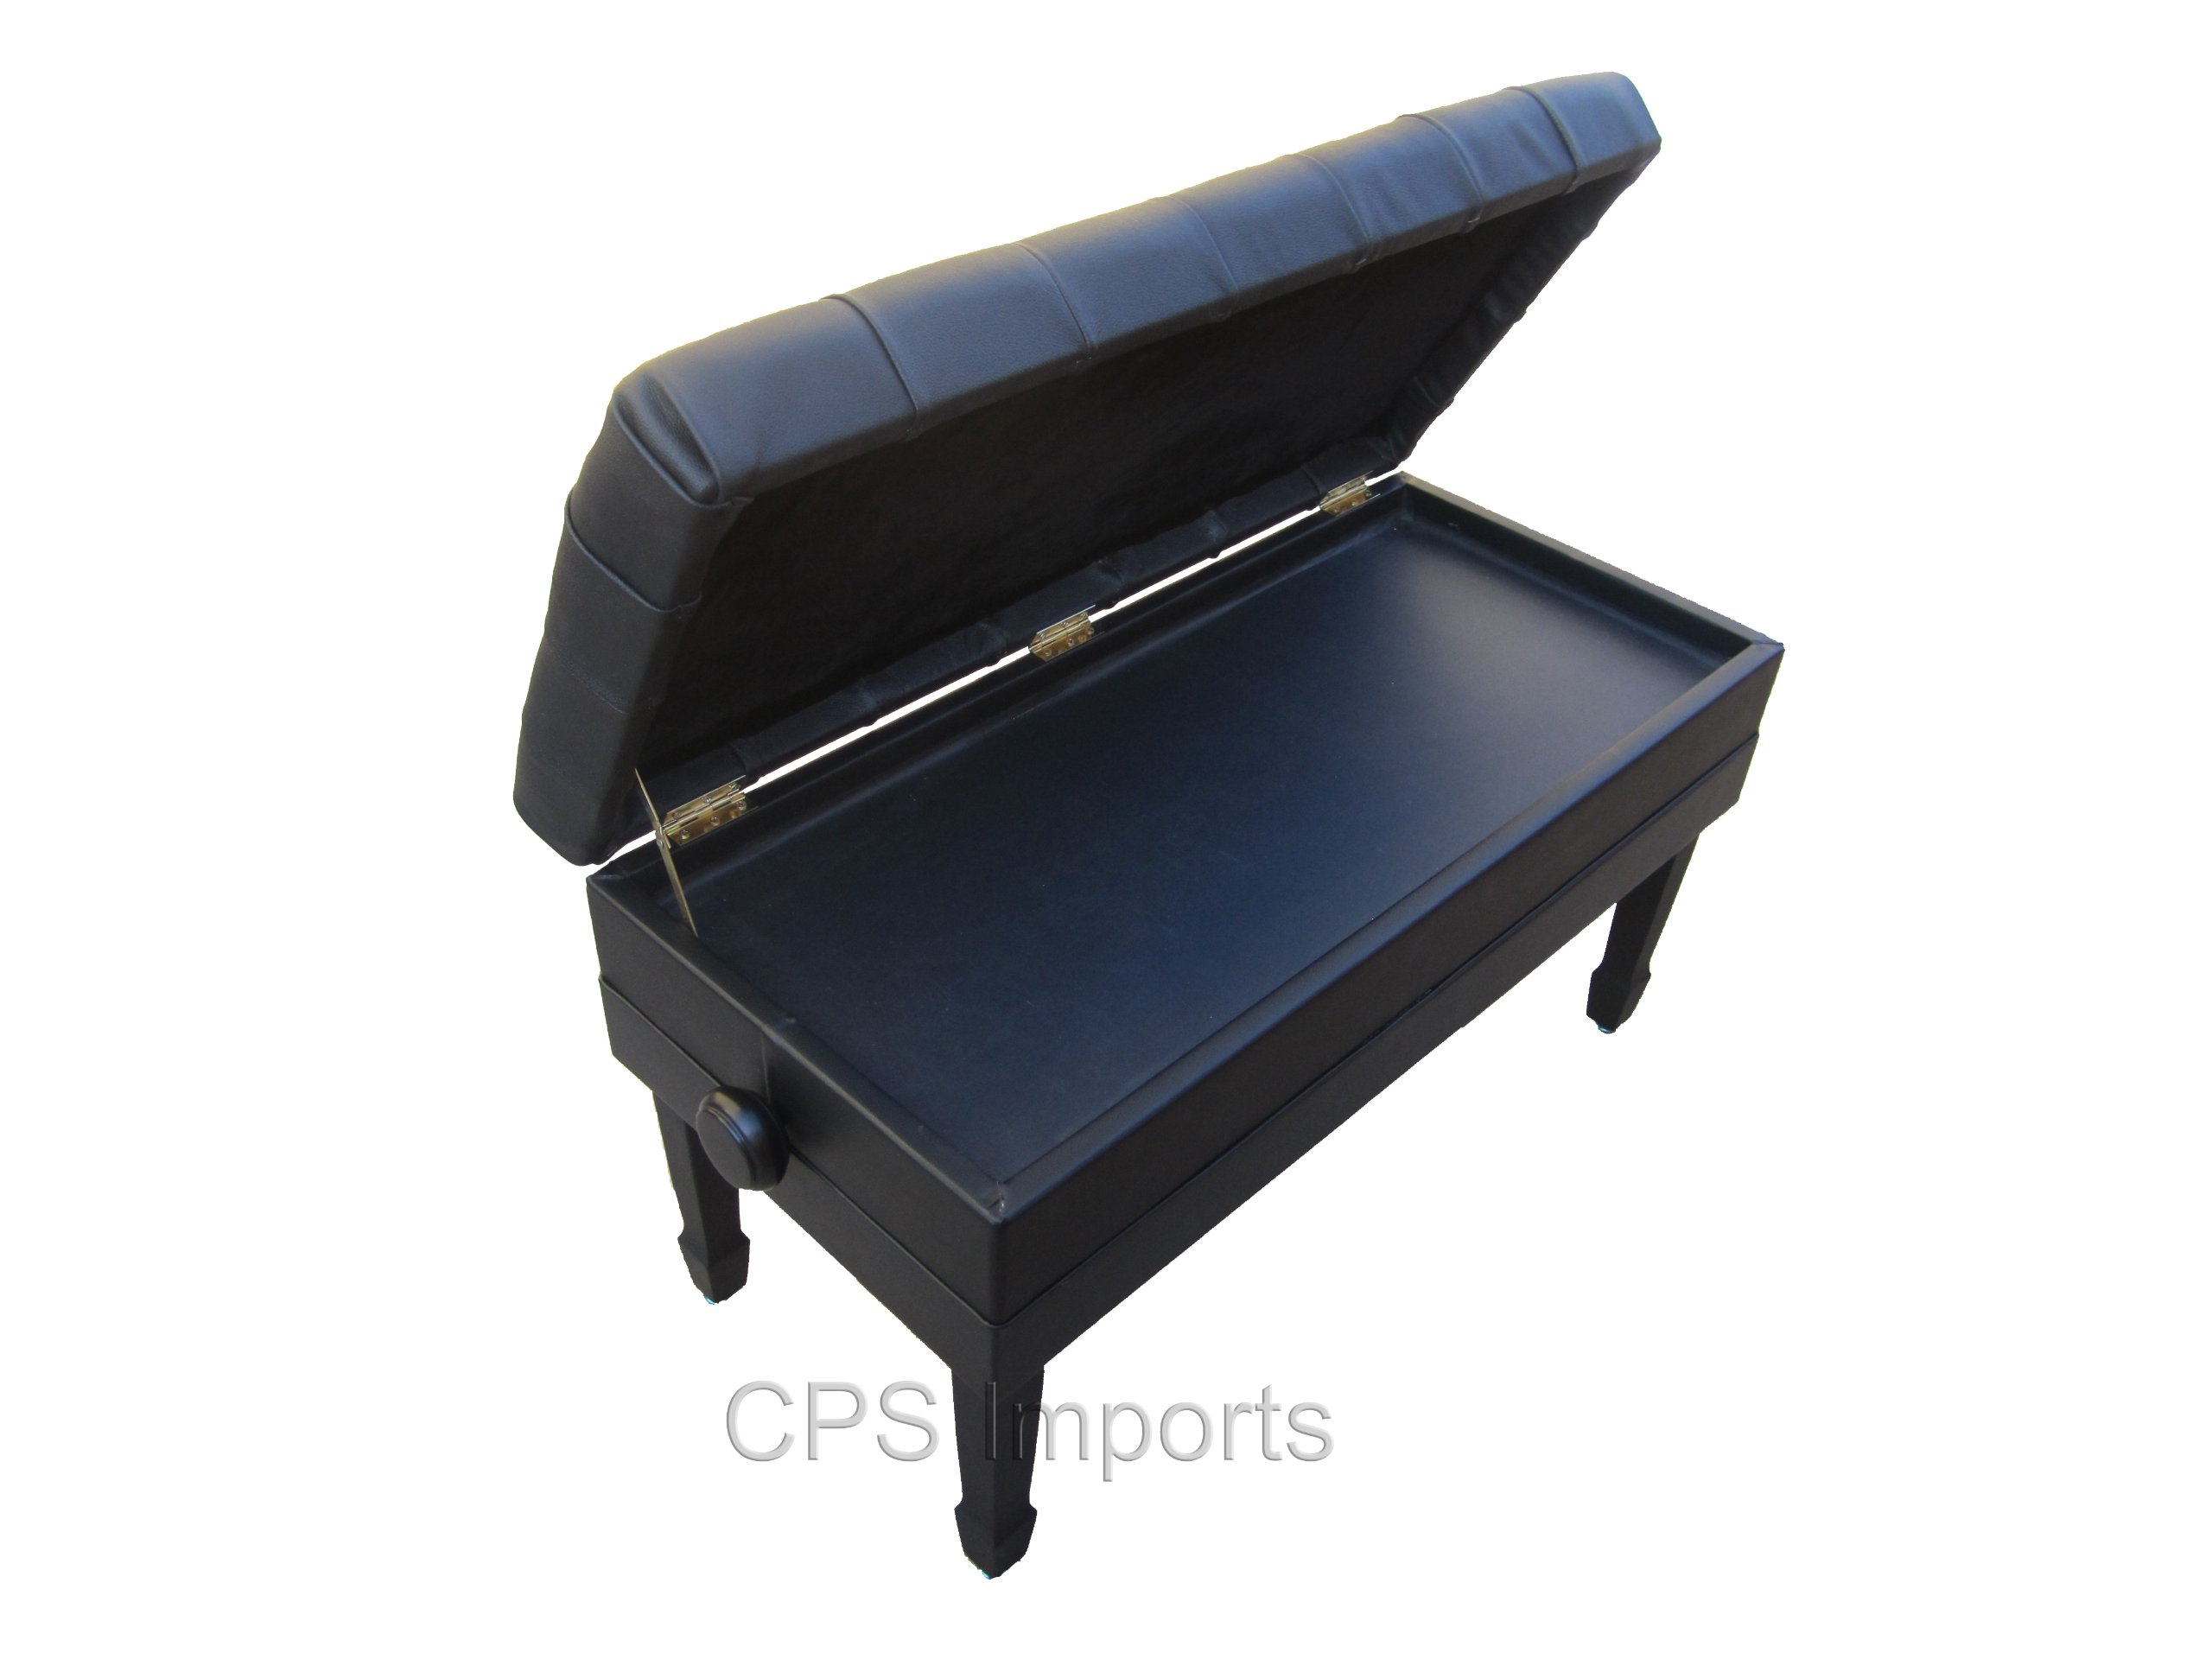 Adjustable Duet Size Genuine Leather Artist Concert Piano Bench in Ebony